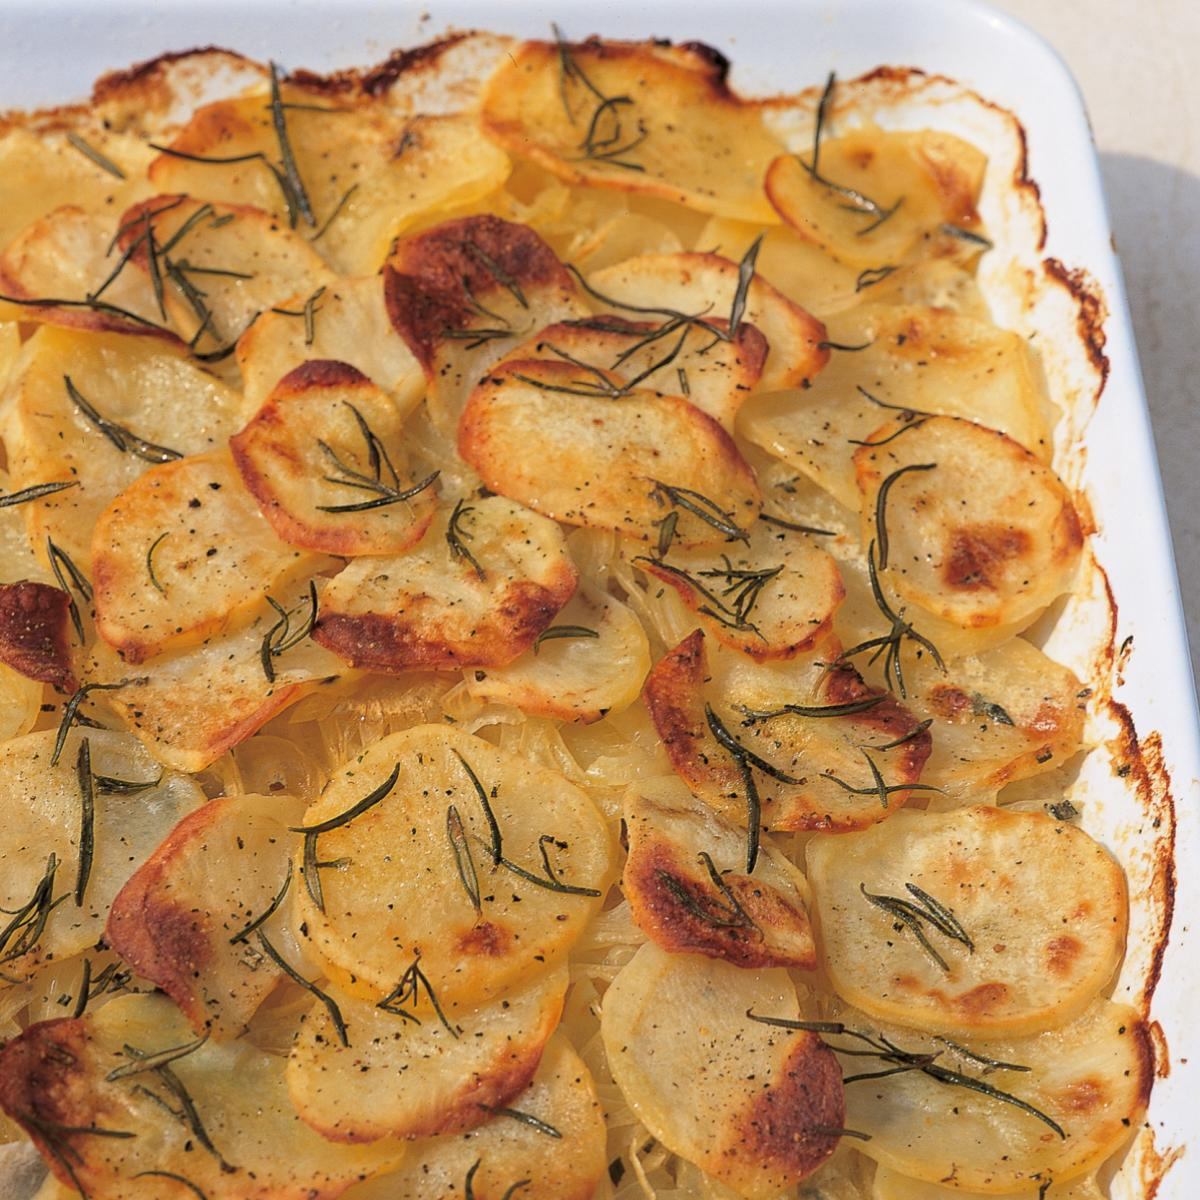 Htc potatoes boulangeres with rosemary